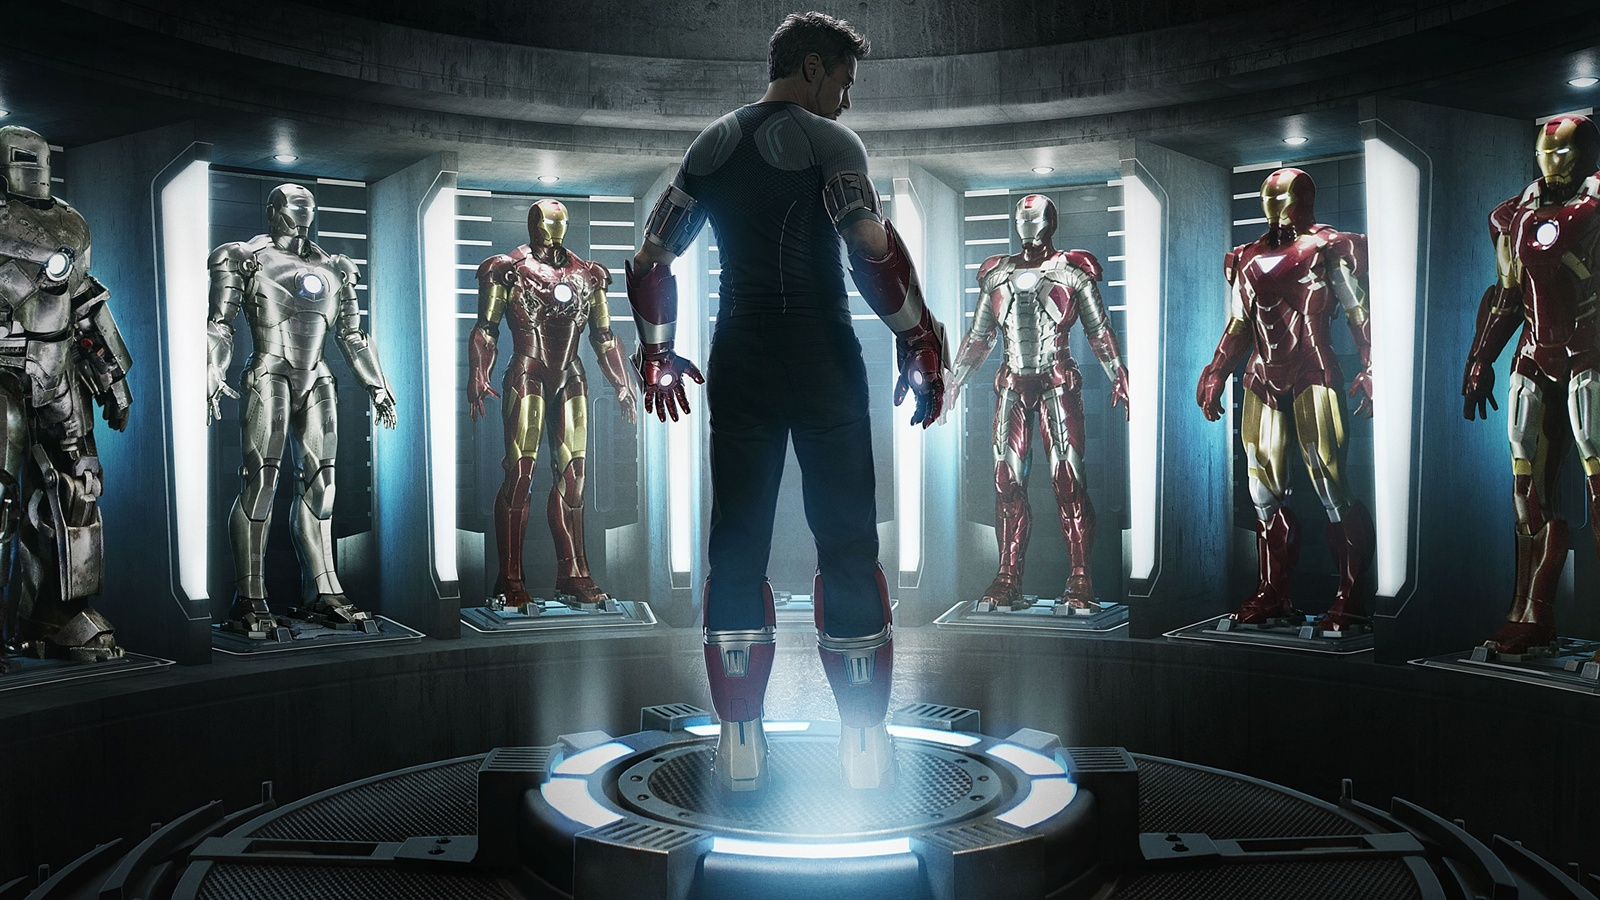 iron man hd wallpaper 1600x900, pc iron man hd wallpaper 1600x900